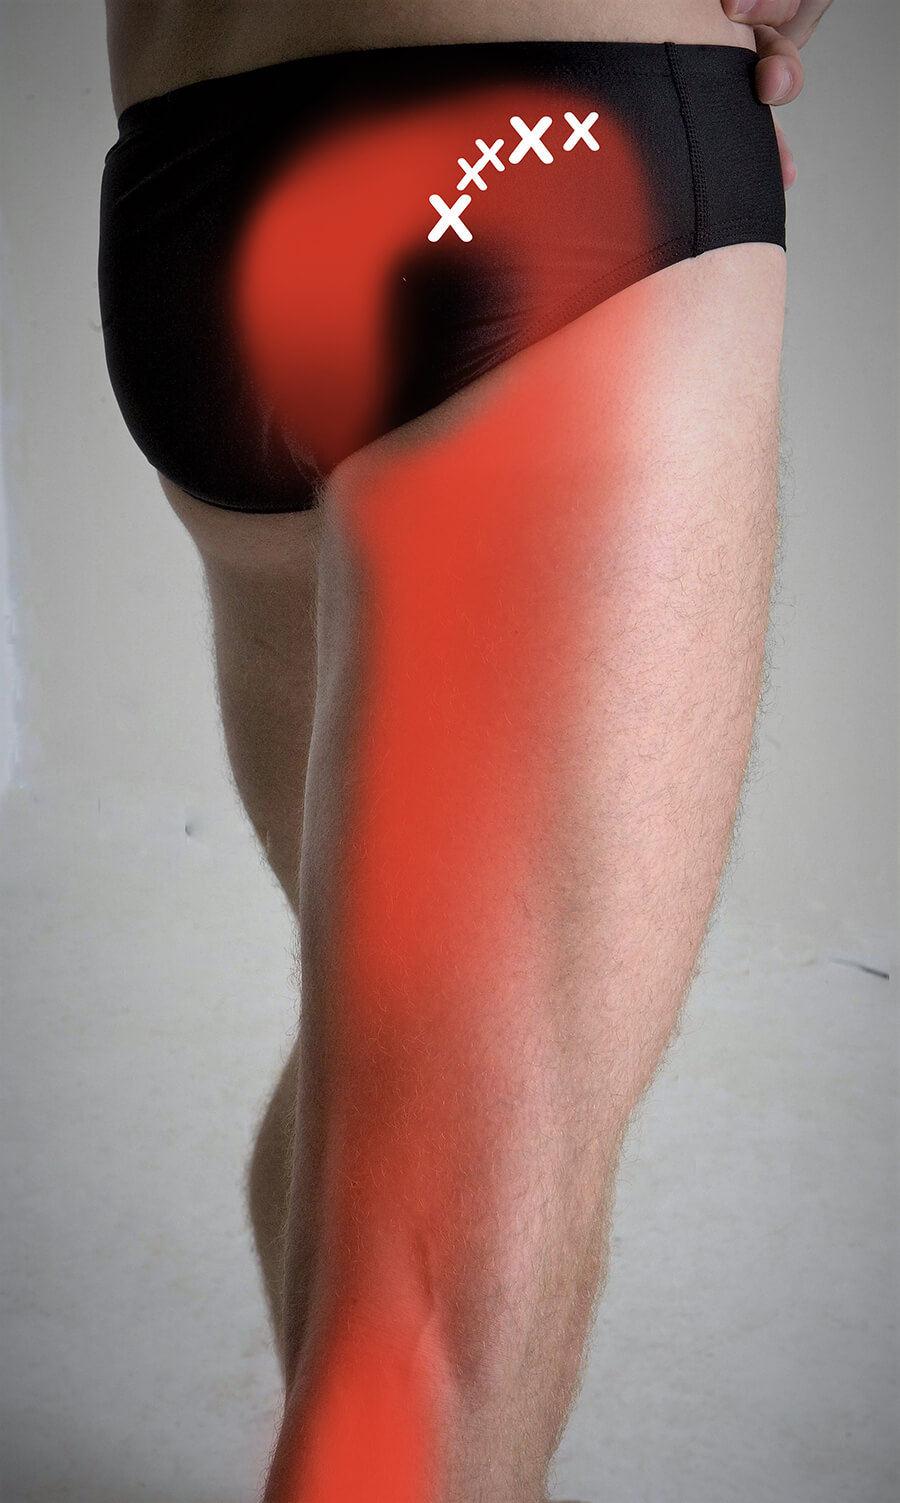 Gluteus Minimus Pain Pattern